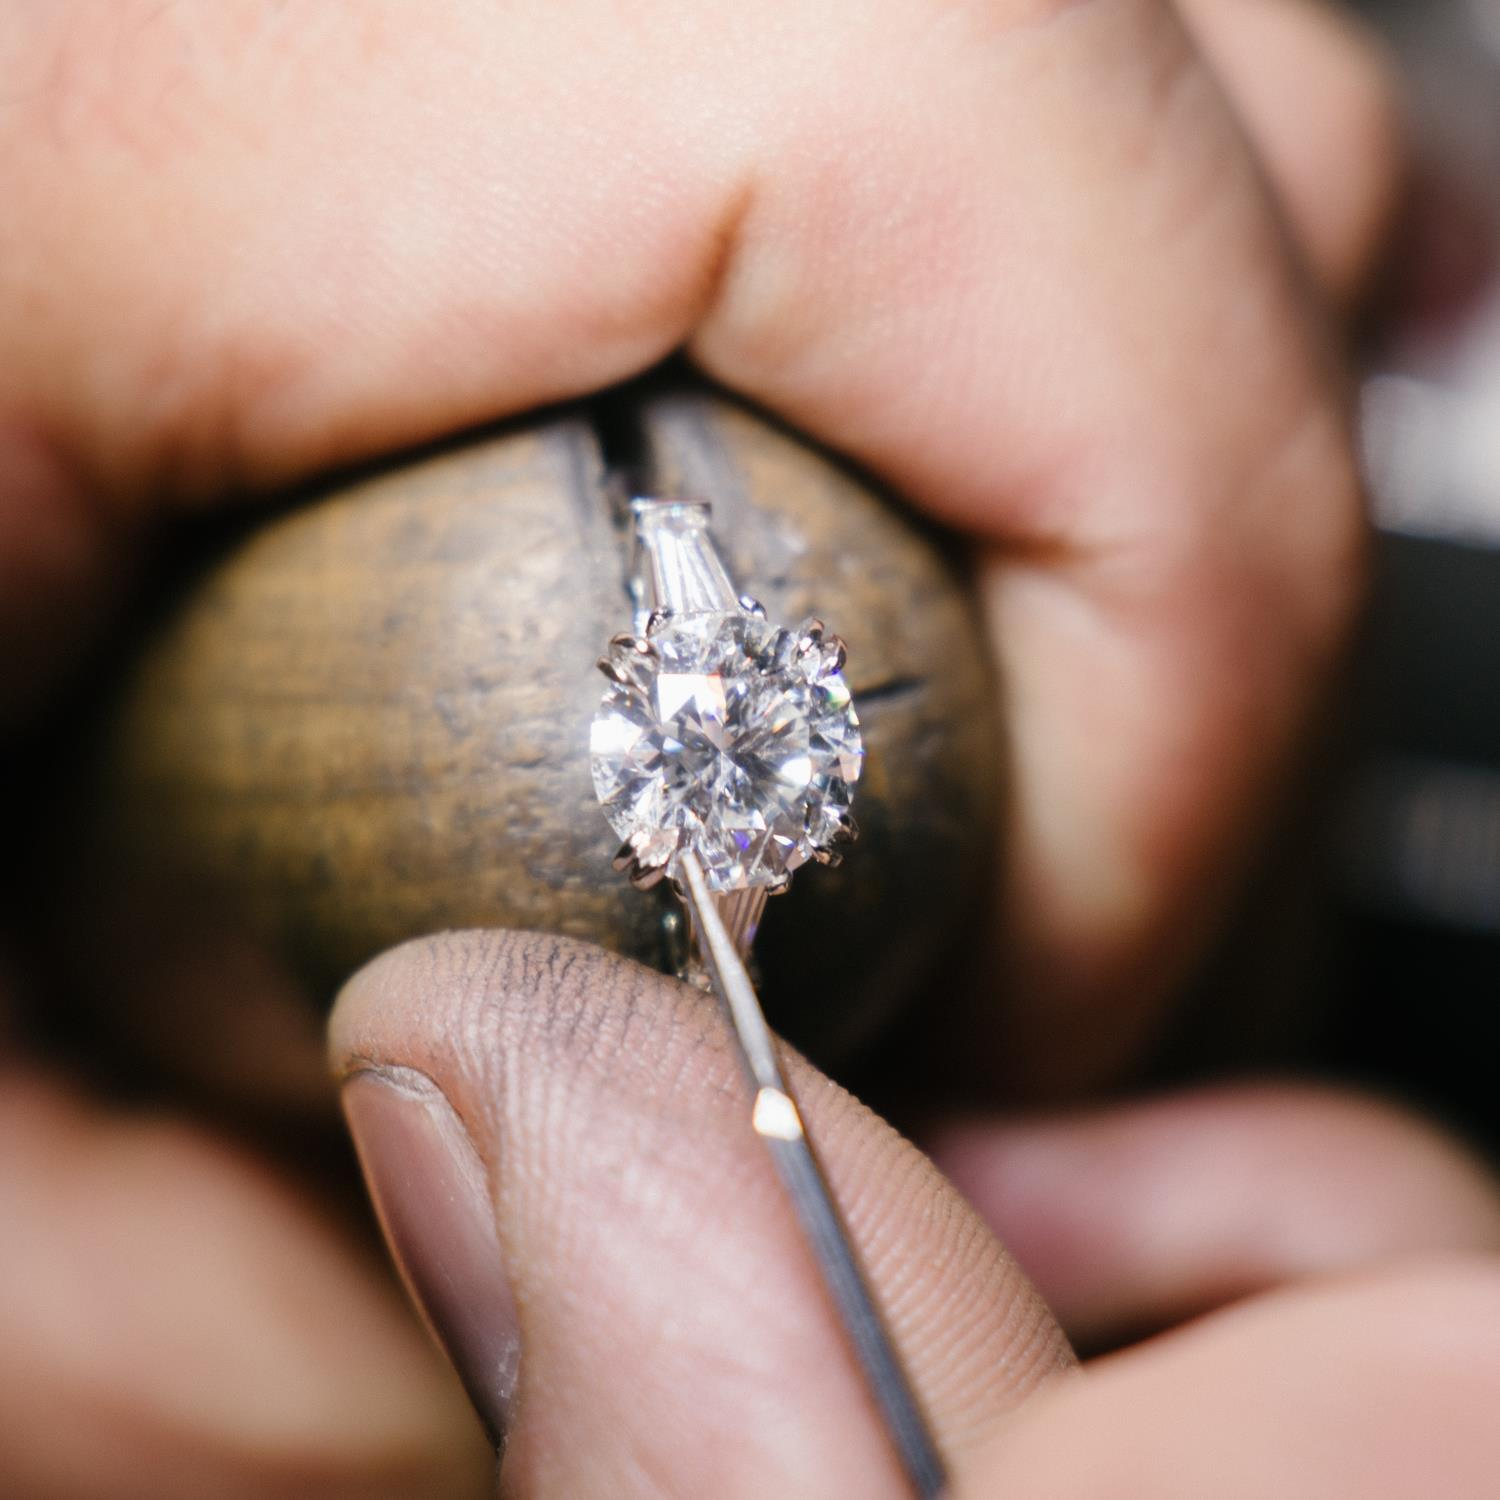 Learn About What it Takes to Make a Fully Handmade Ring